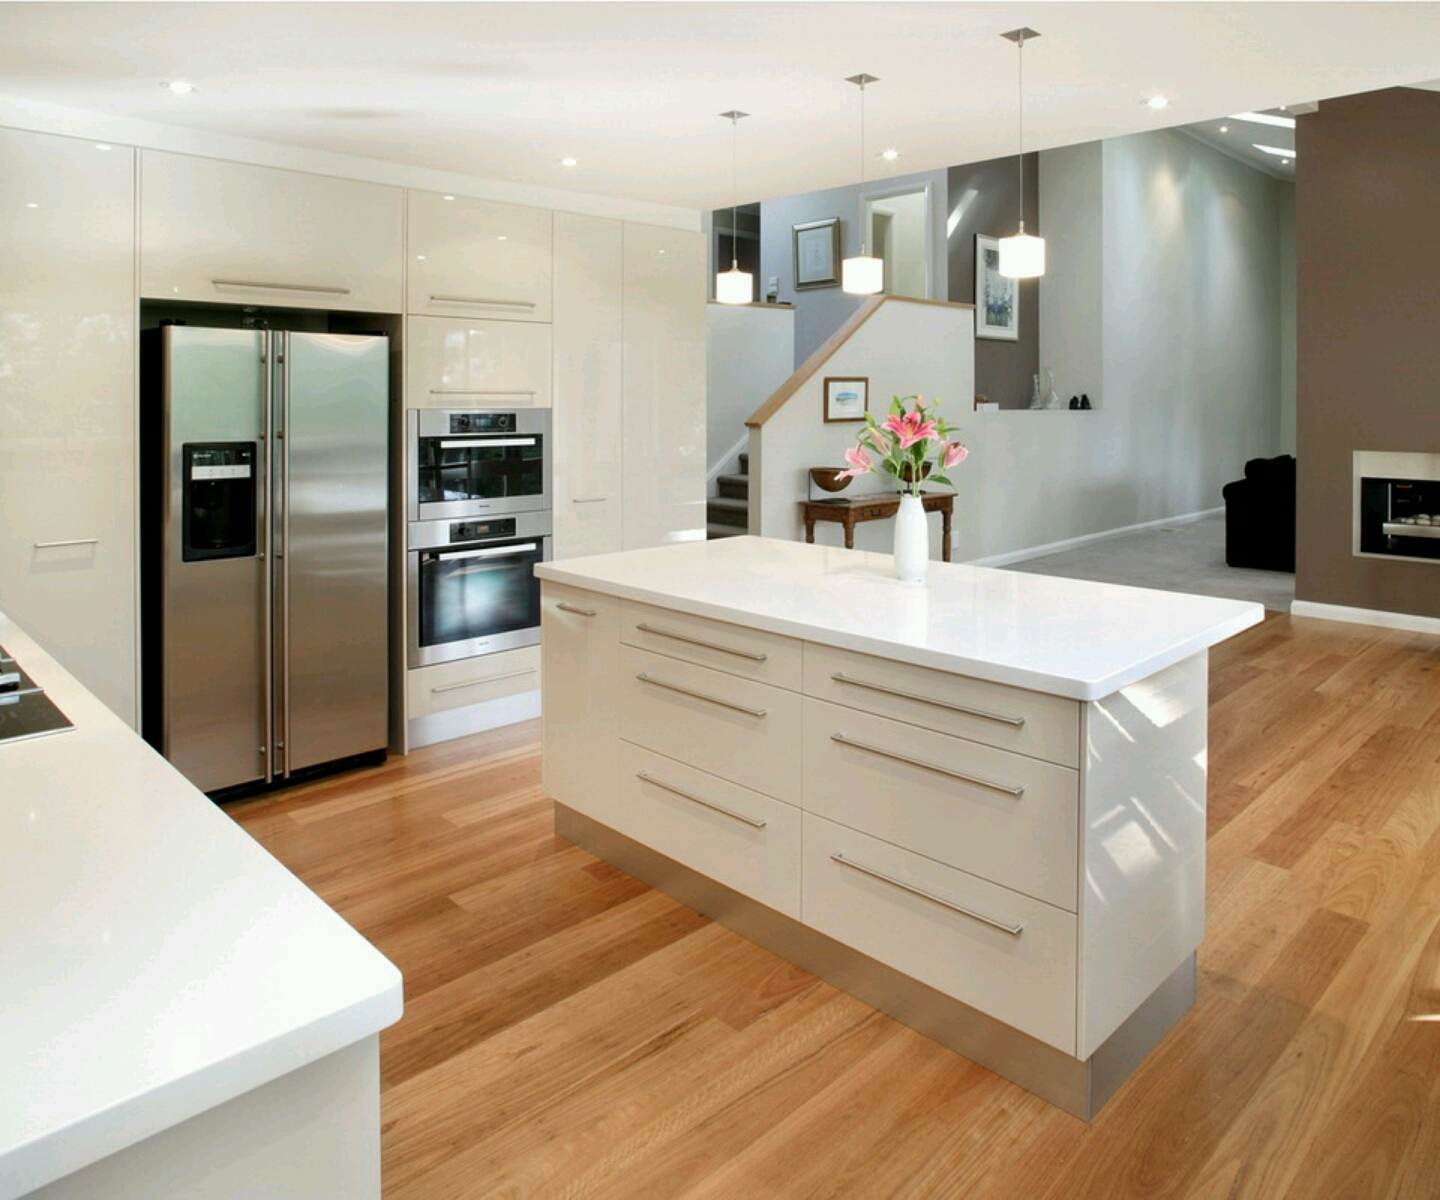 luxury kitchen modern cabinets designs.